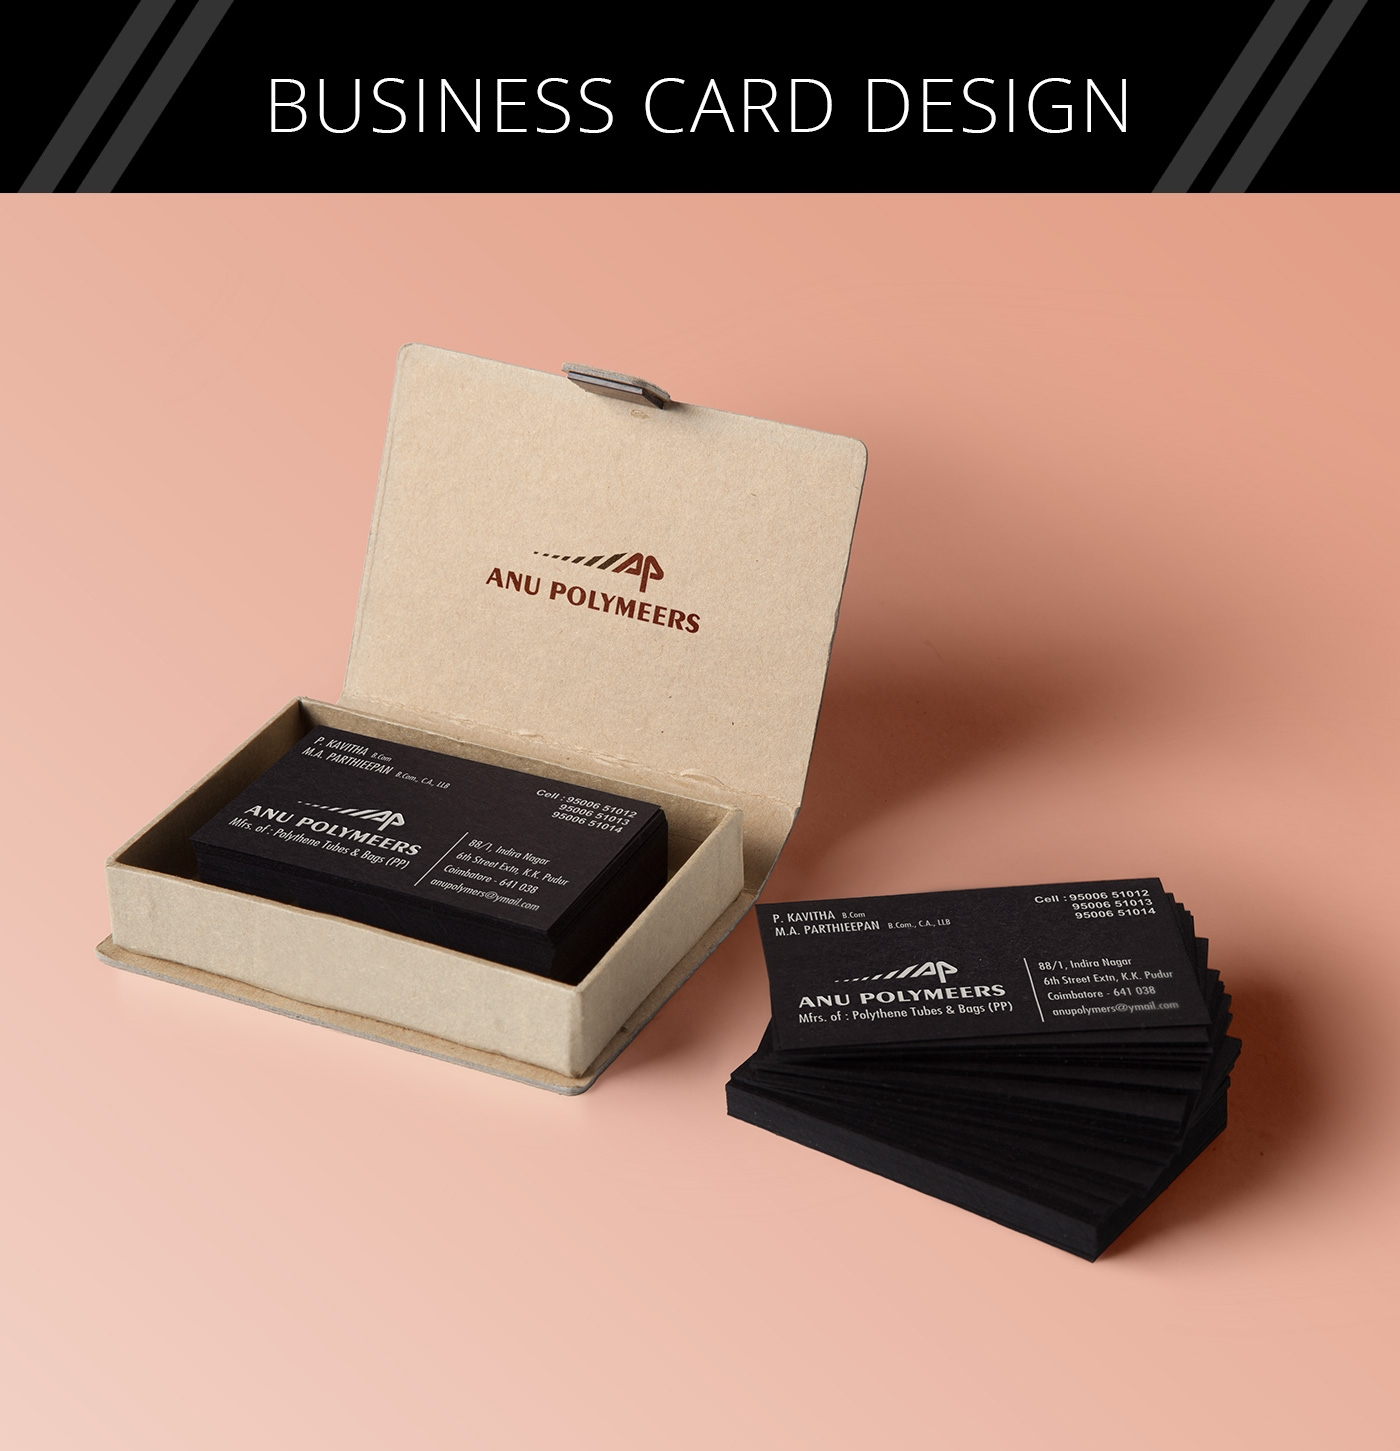 Anu Polymers Business Card Design